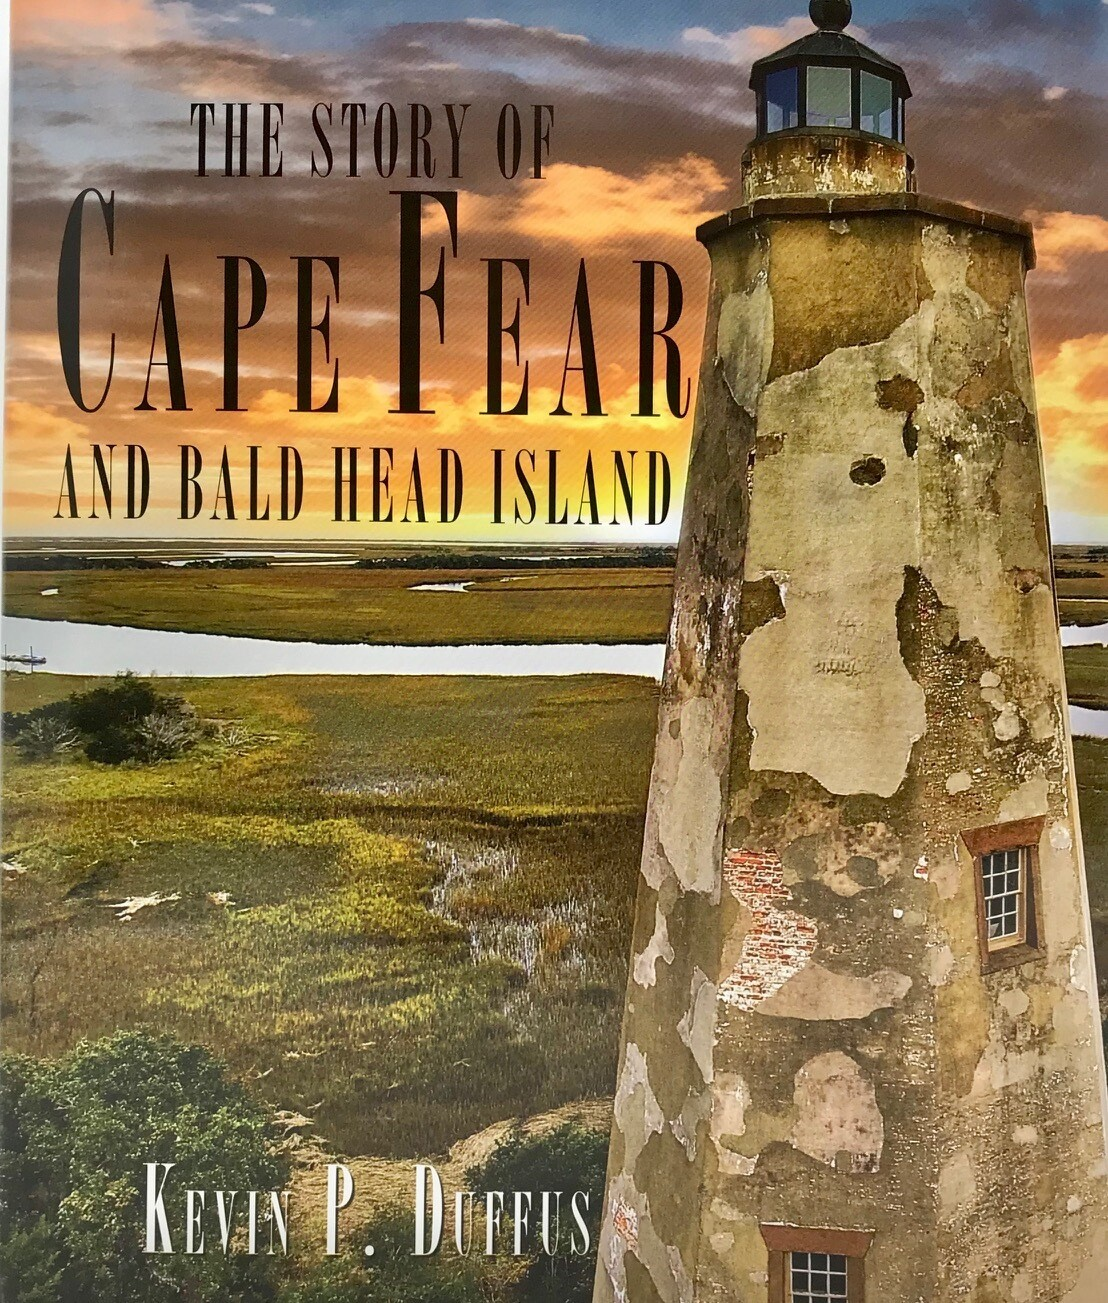 The Story of Cape Fear and Bald Head Island